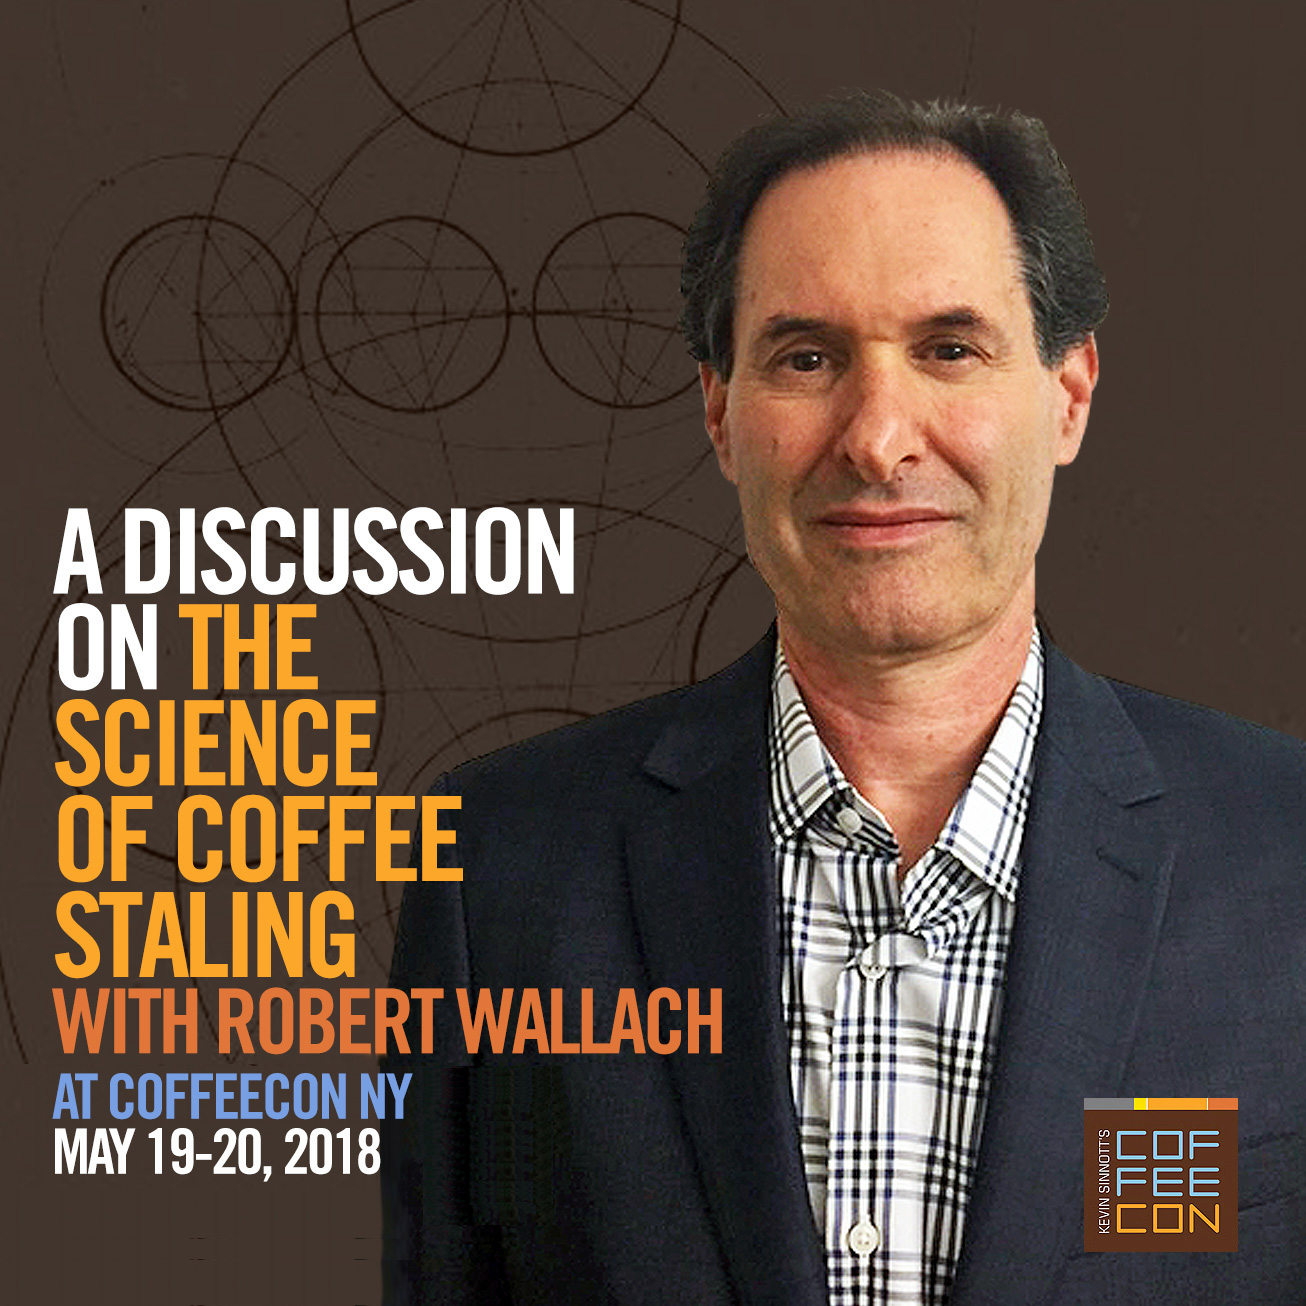 The Science of Coffee Staling at CoffeeConNY